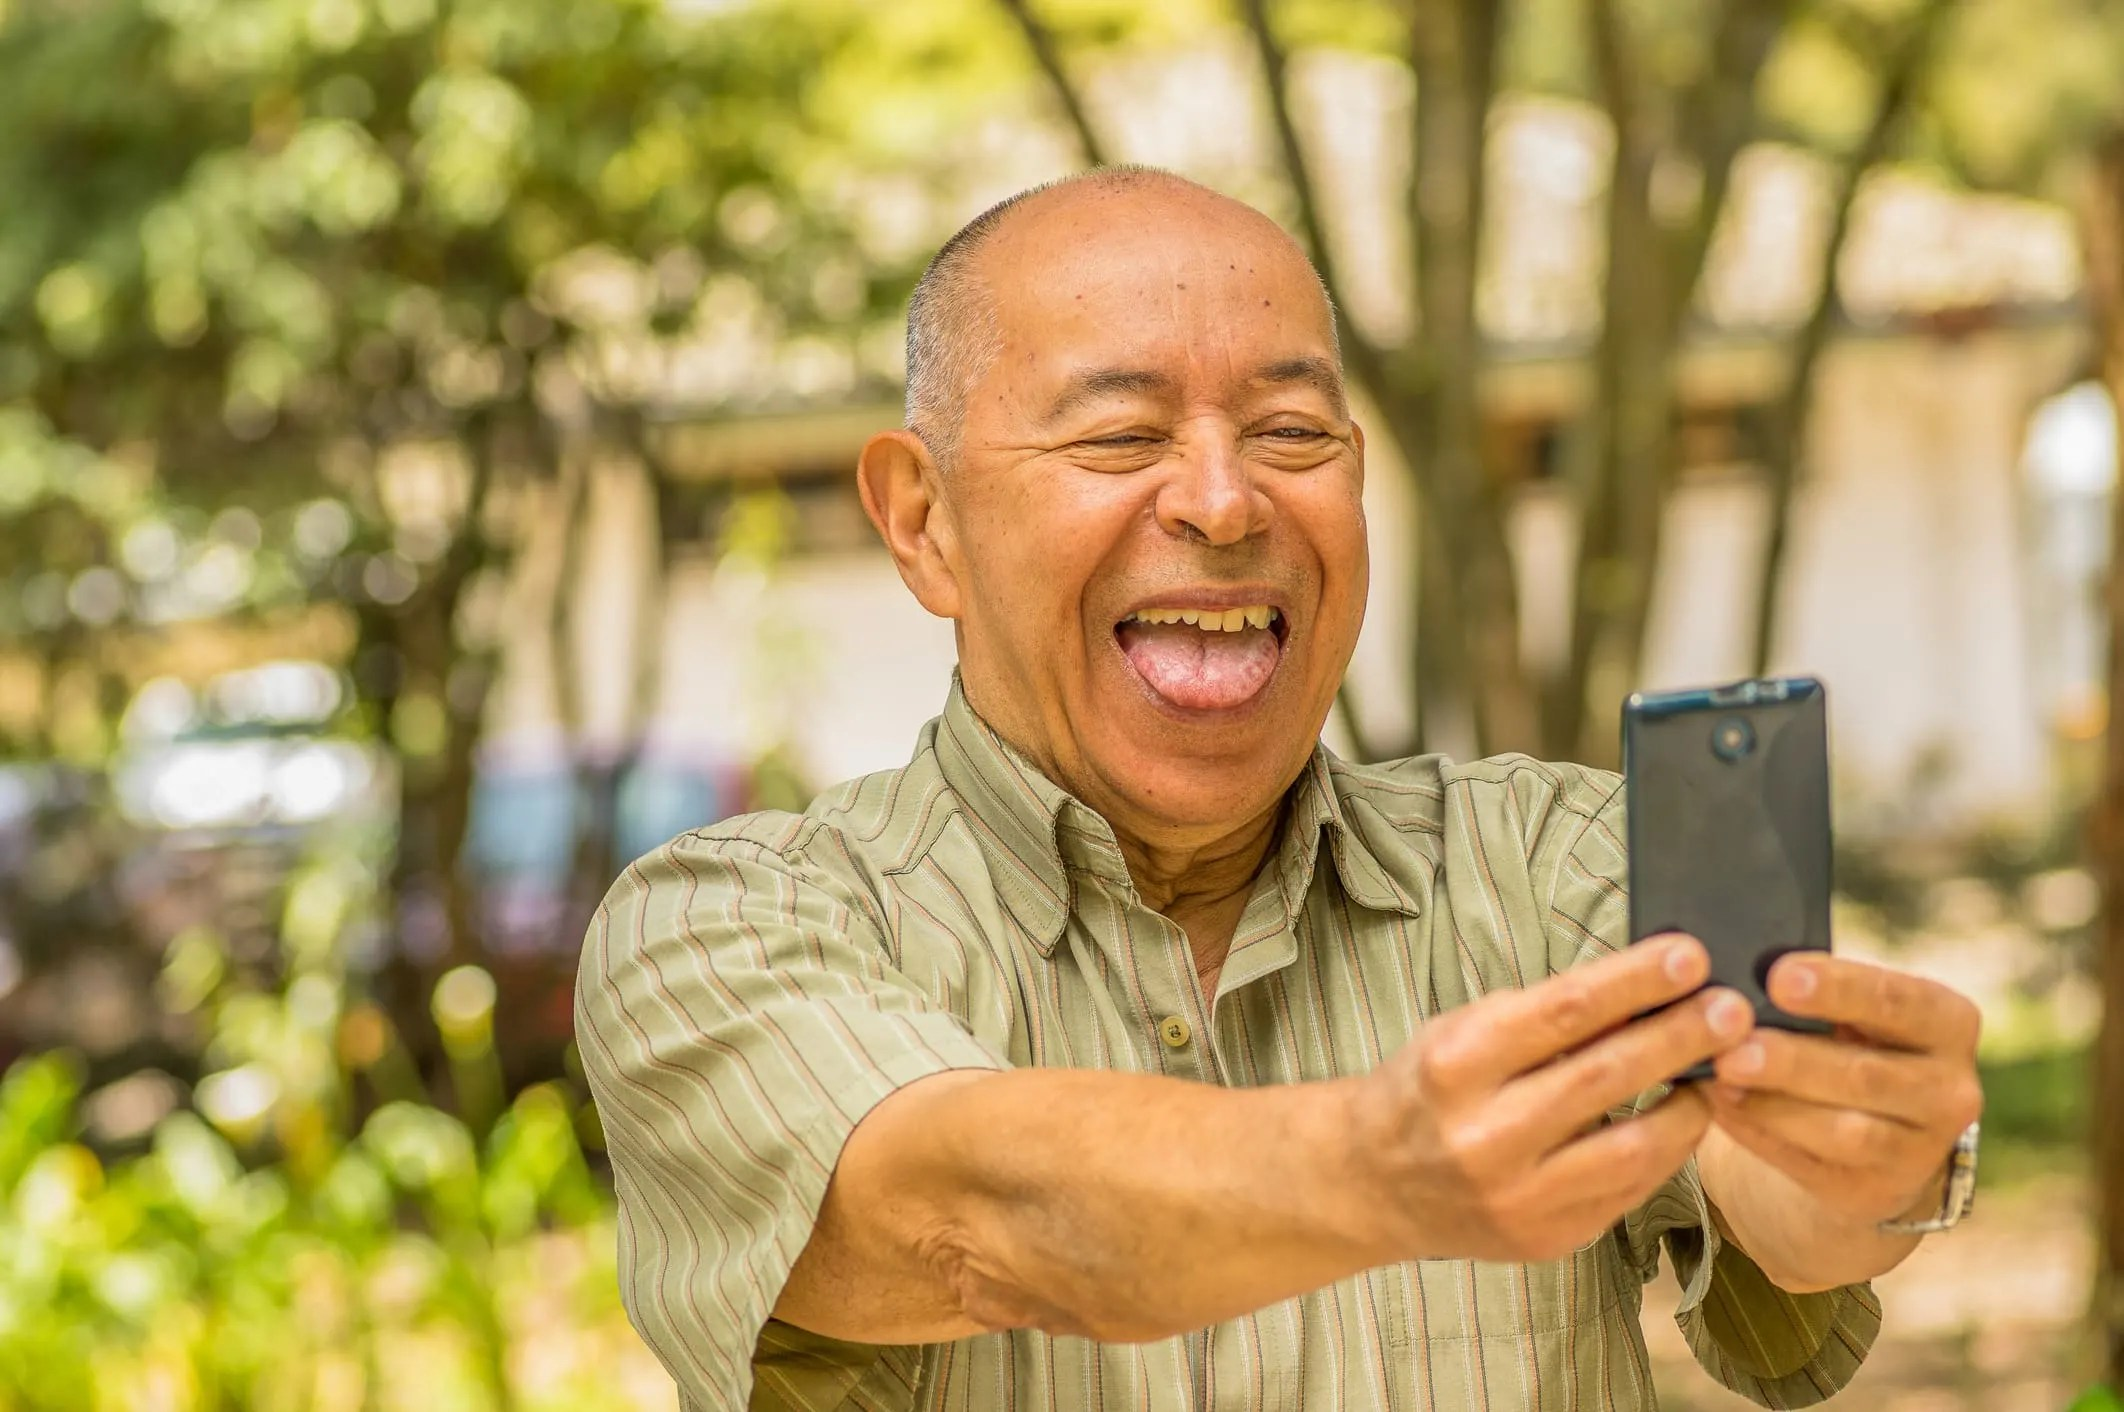 Man taking selfie with tongue poking out